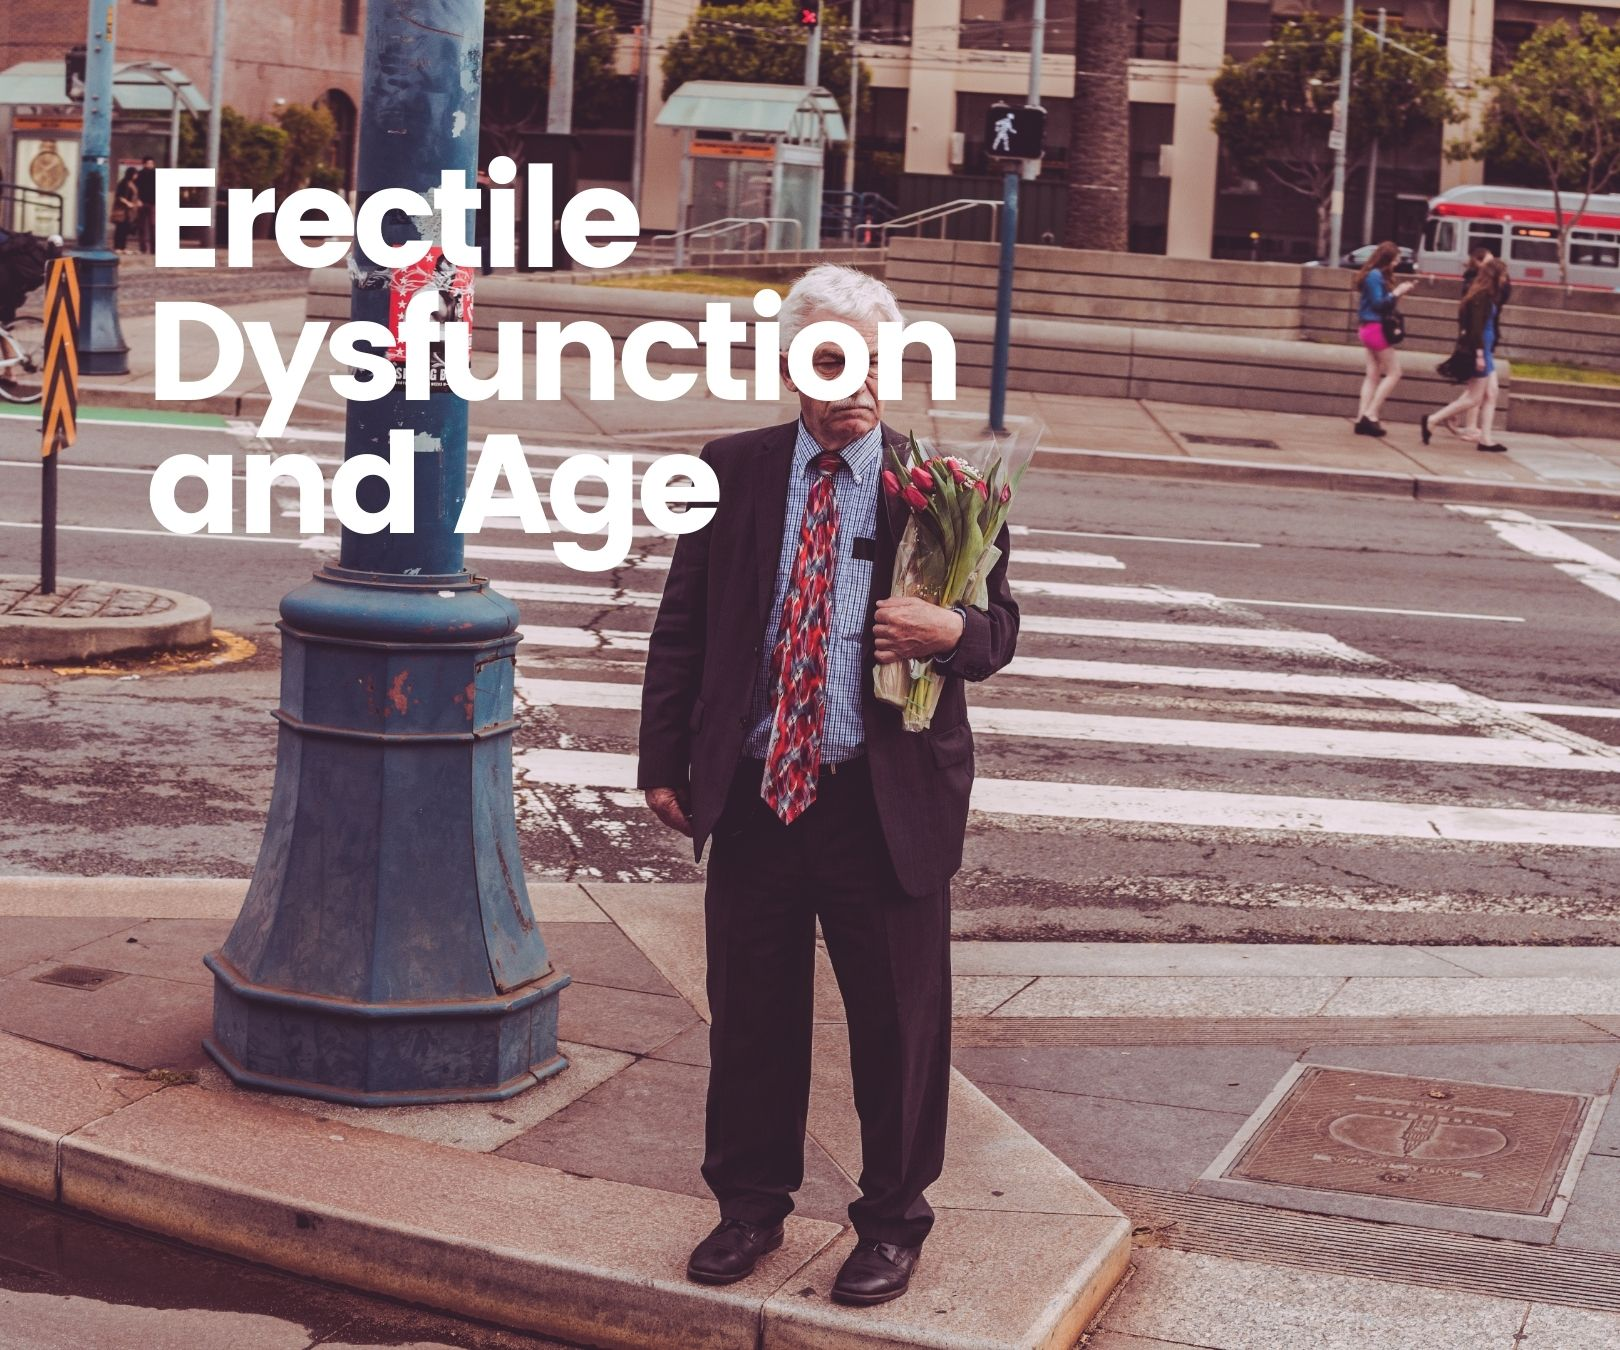 Erectile Dysfunction and Age: Dispelling Misconceptions